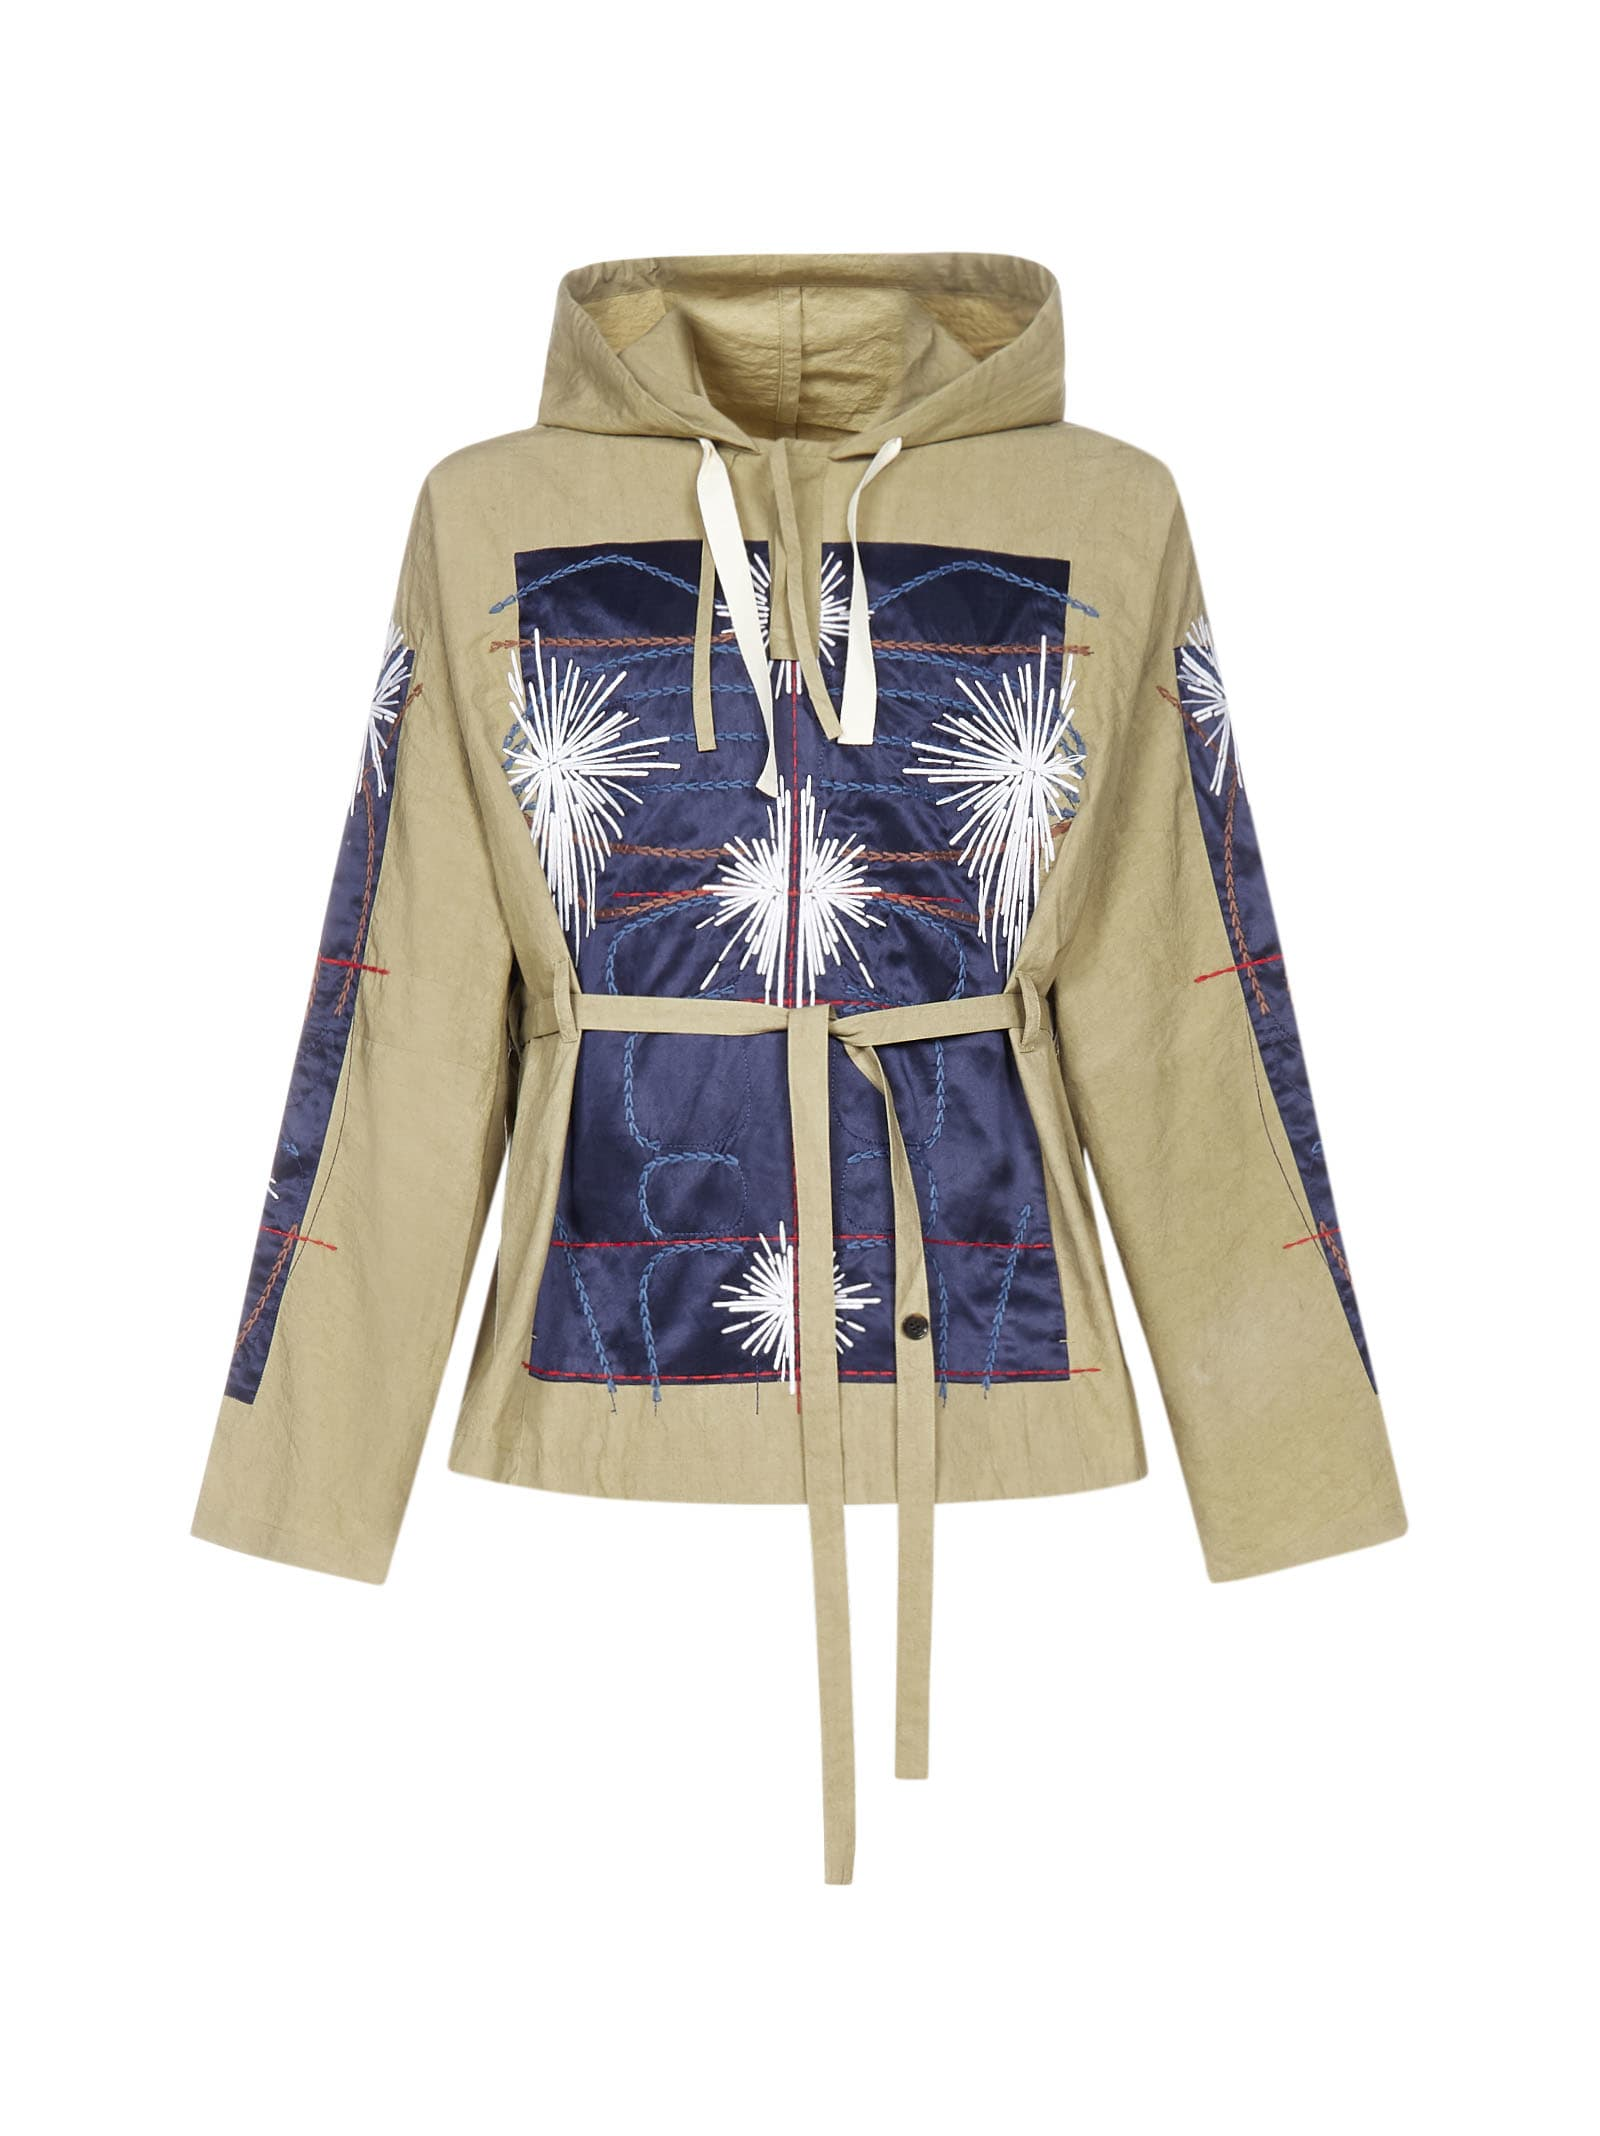 Craig Green Embroidered Cotton Hooded Jacket